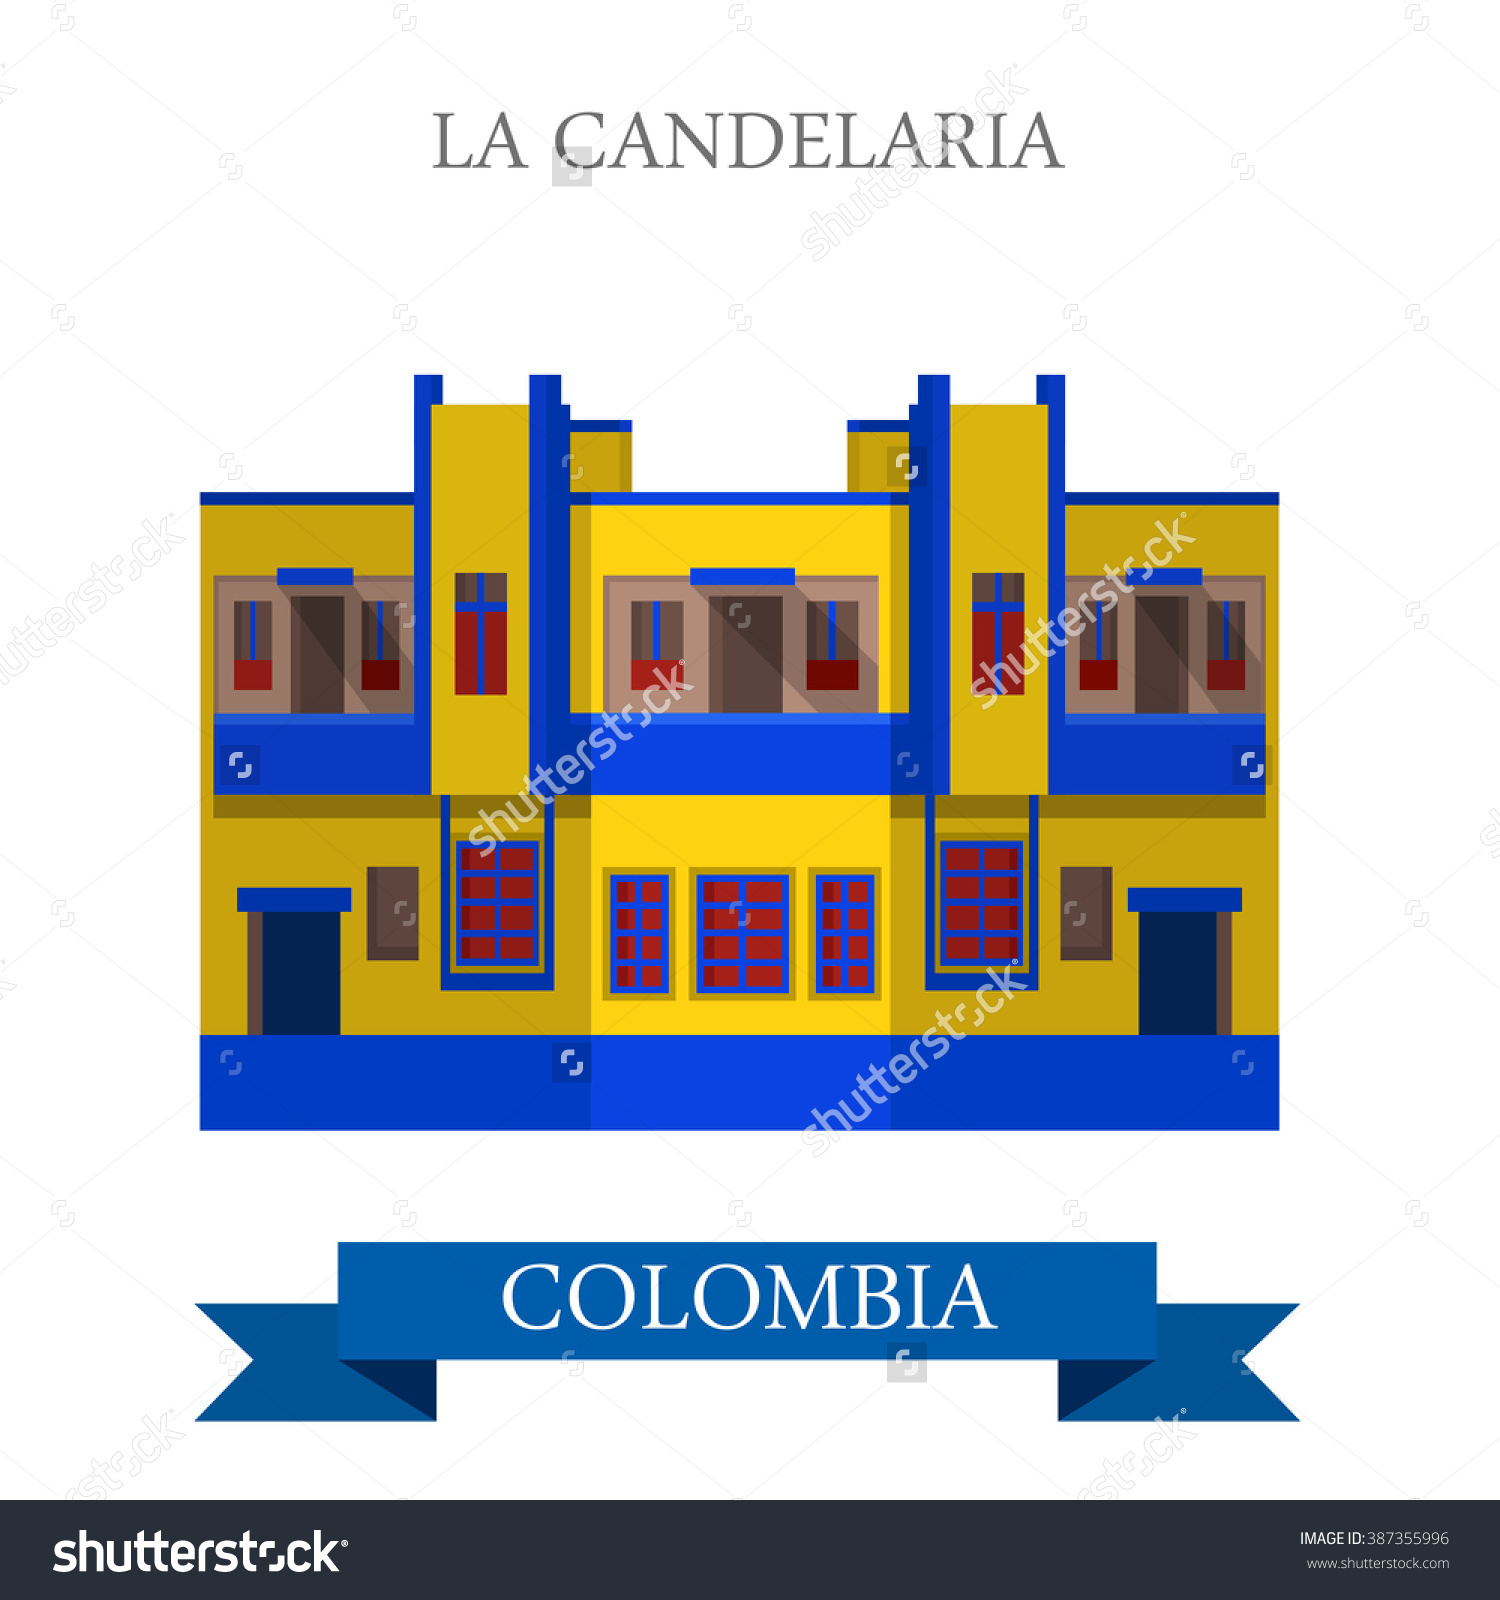 La Candelaria In Bogota Colombia. Flat Cartoon Style Historic.